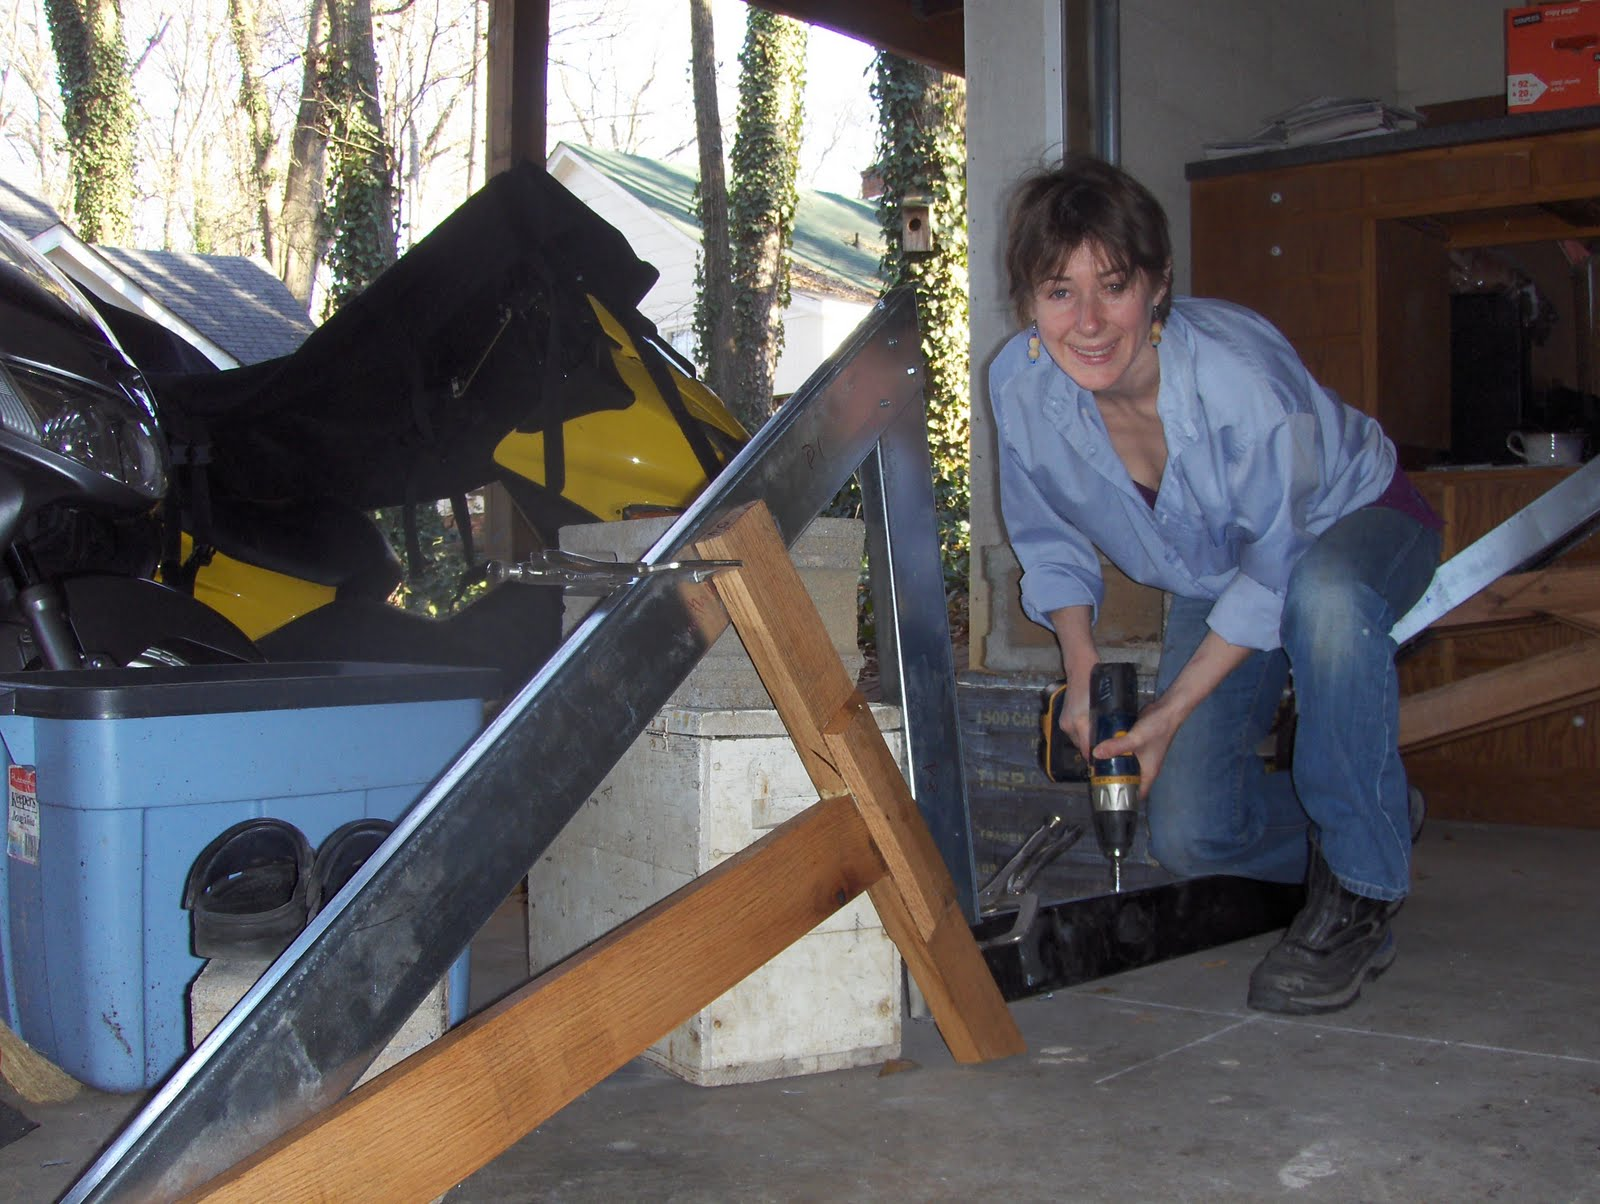 Building A Home Made Solar Powered Travel Trailer From The